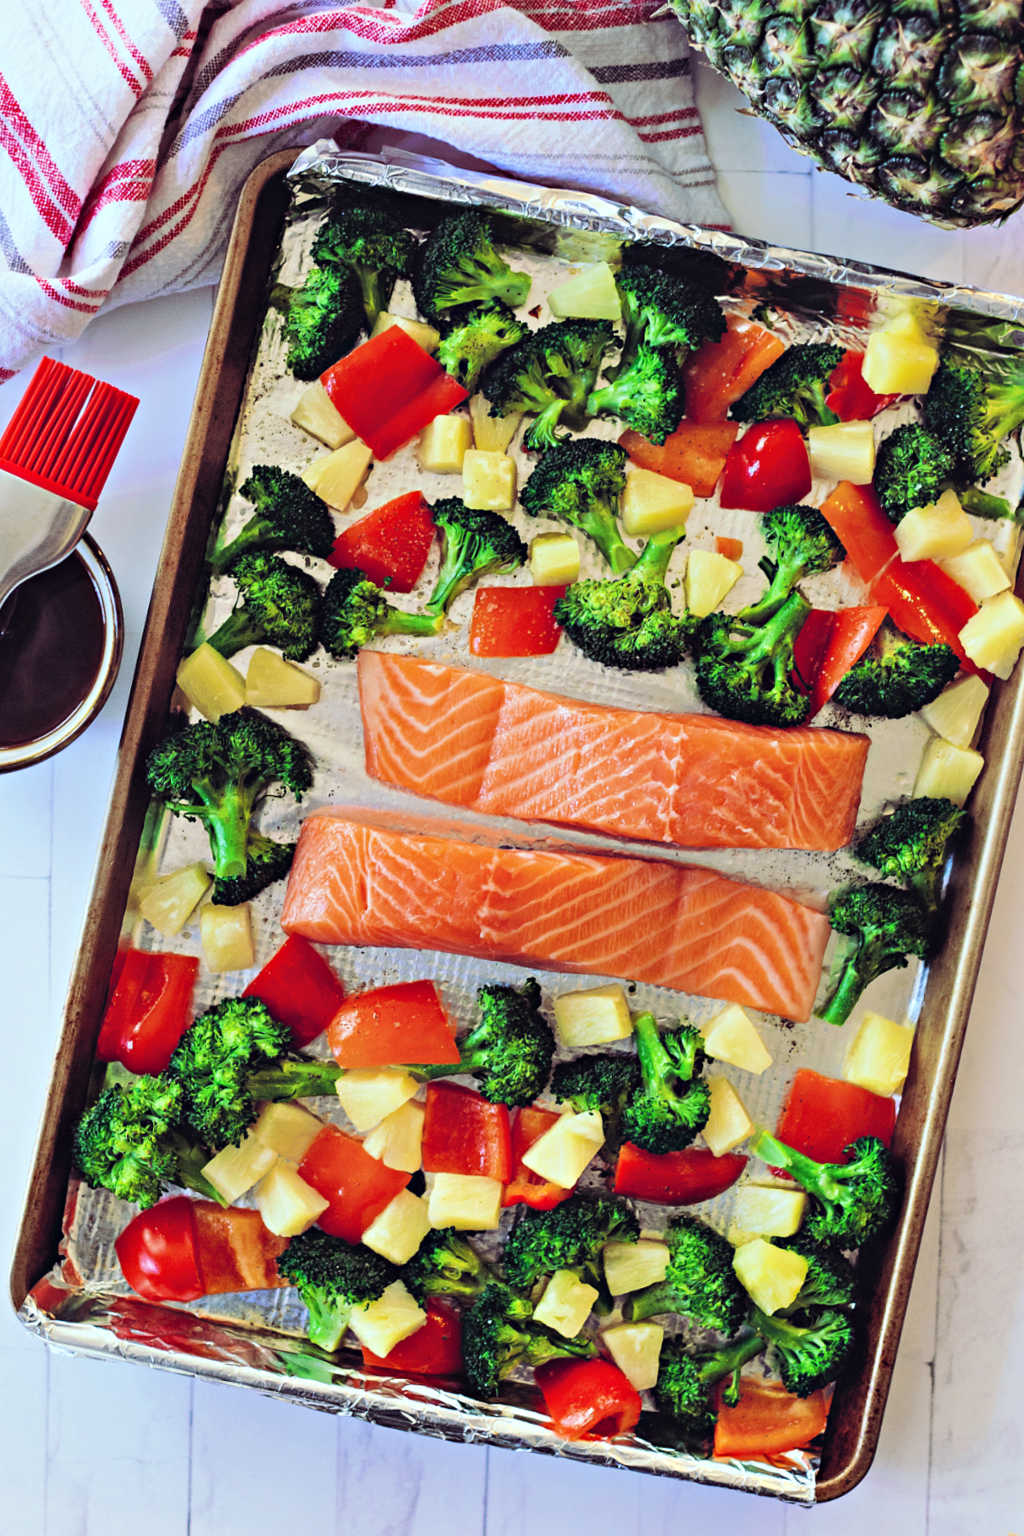 salmon filets, broccoli, red bell pepper, and pineapple on a sheet pan